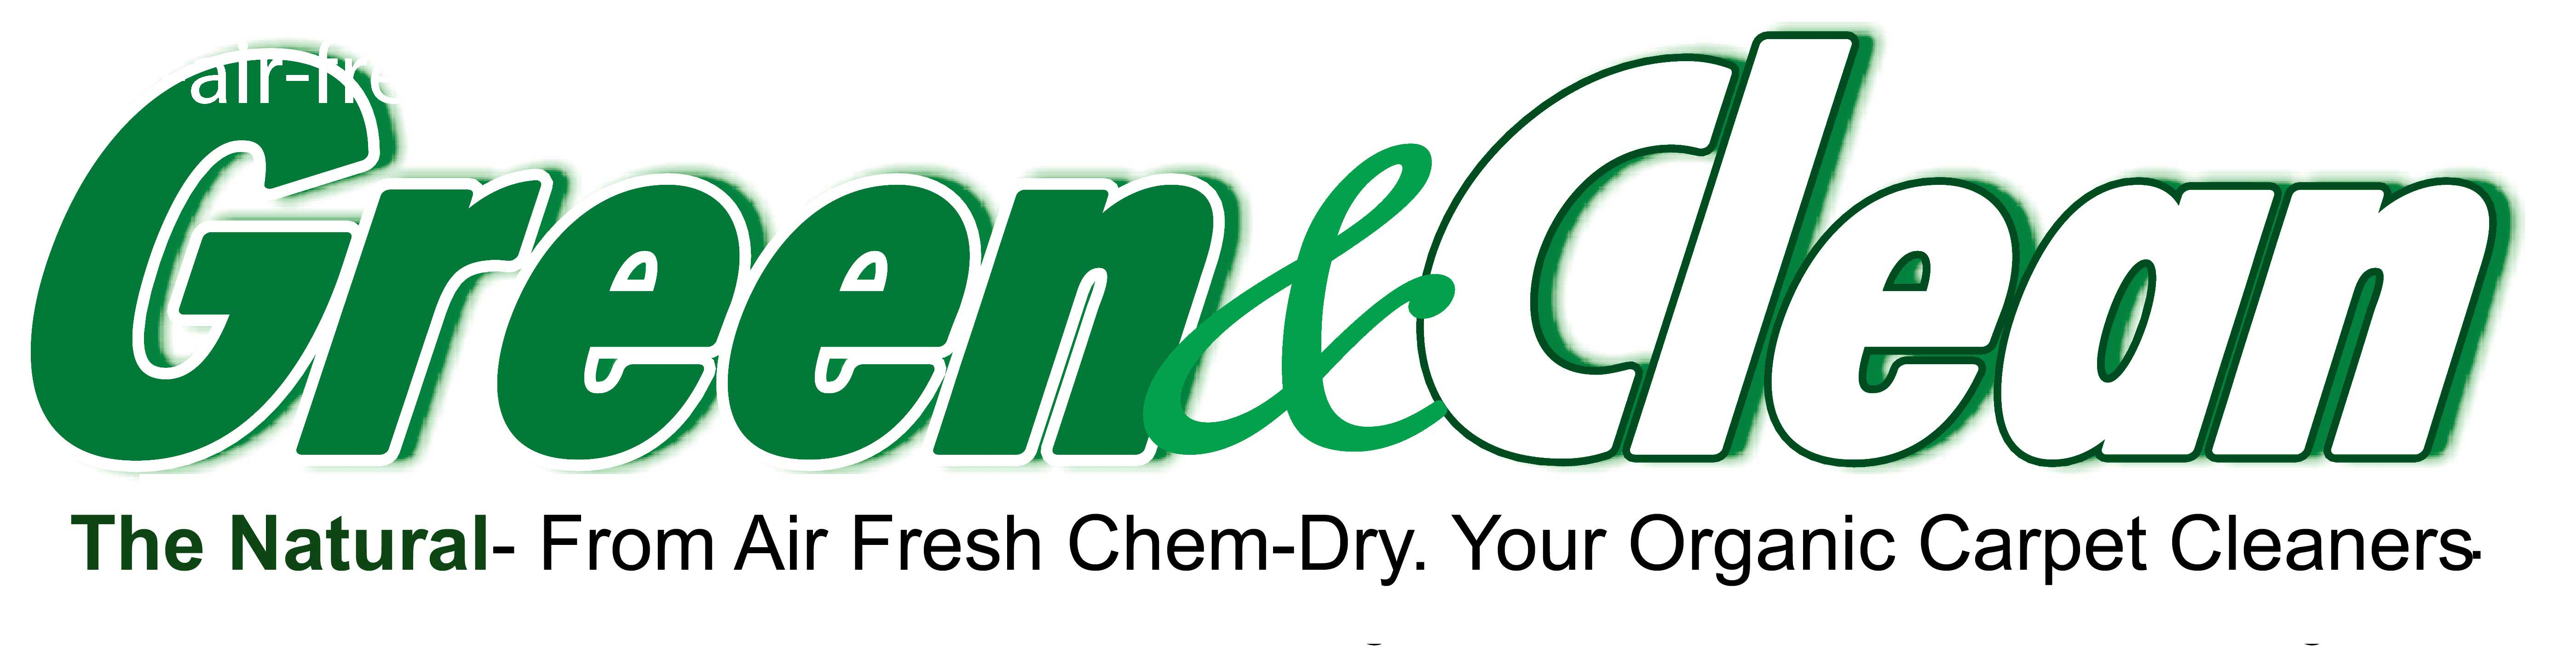 Green Carpet Cleaning Kane County Illinois Chem Dry Of